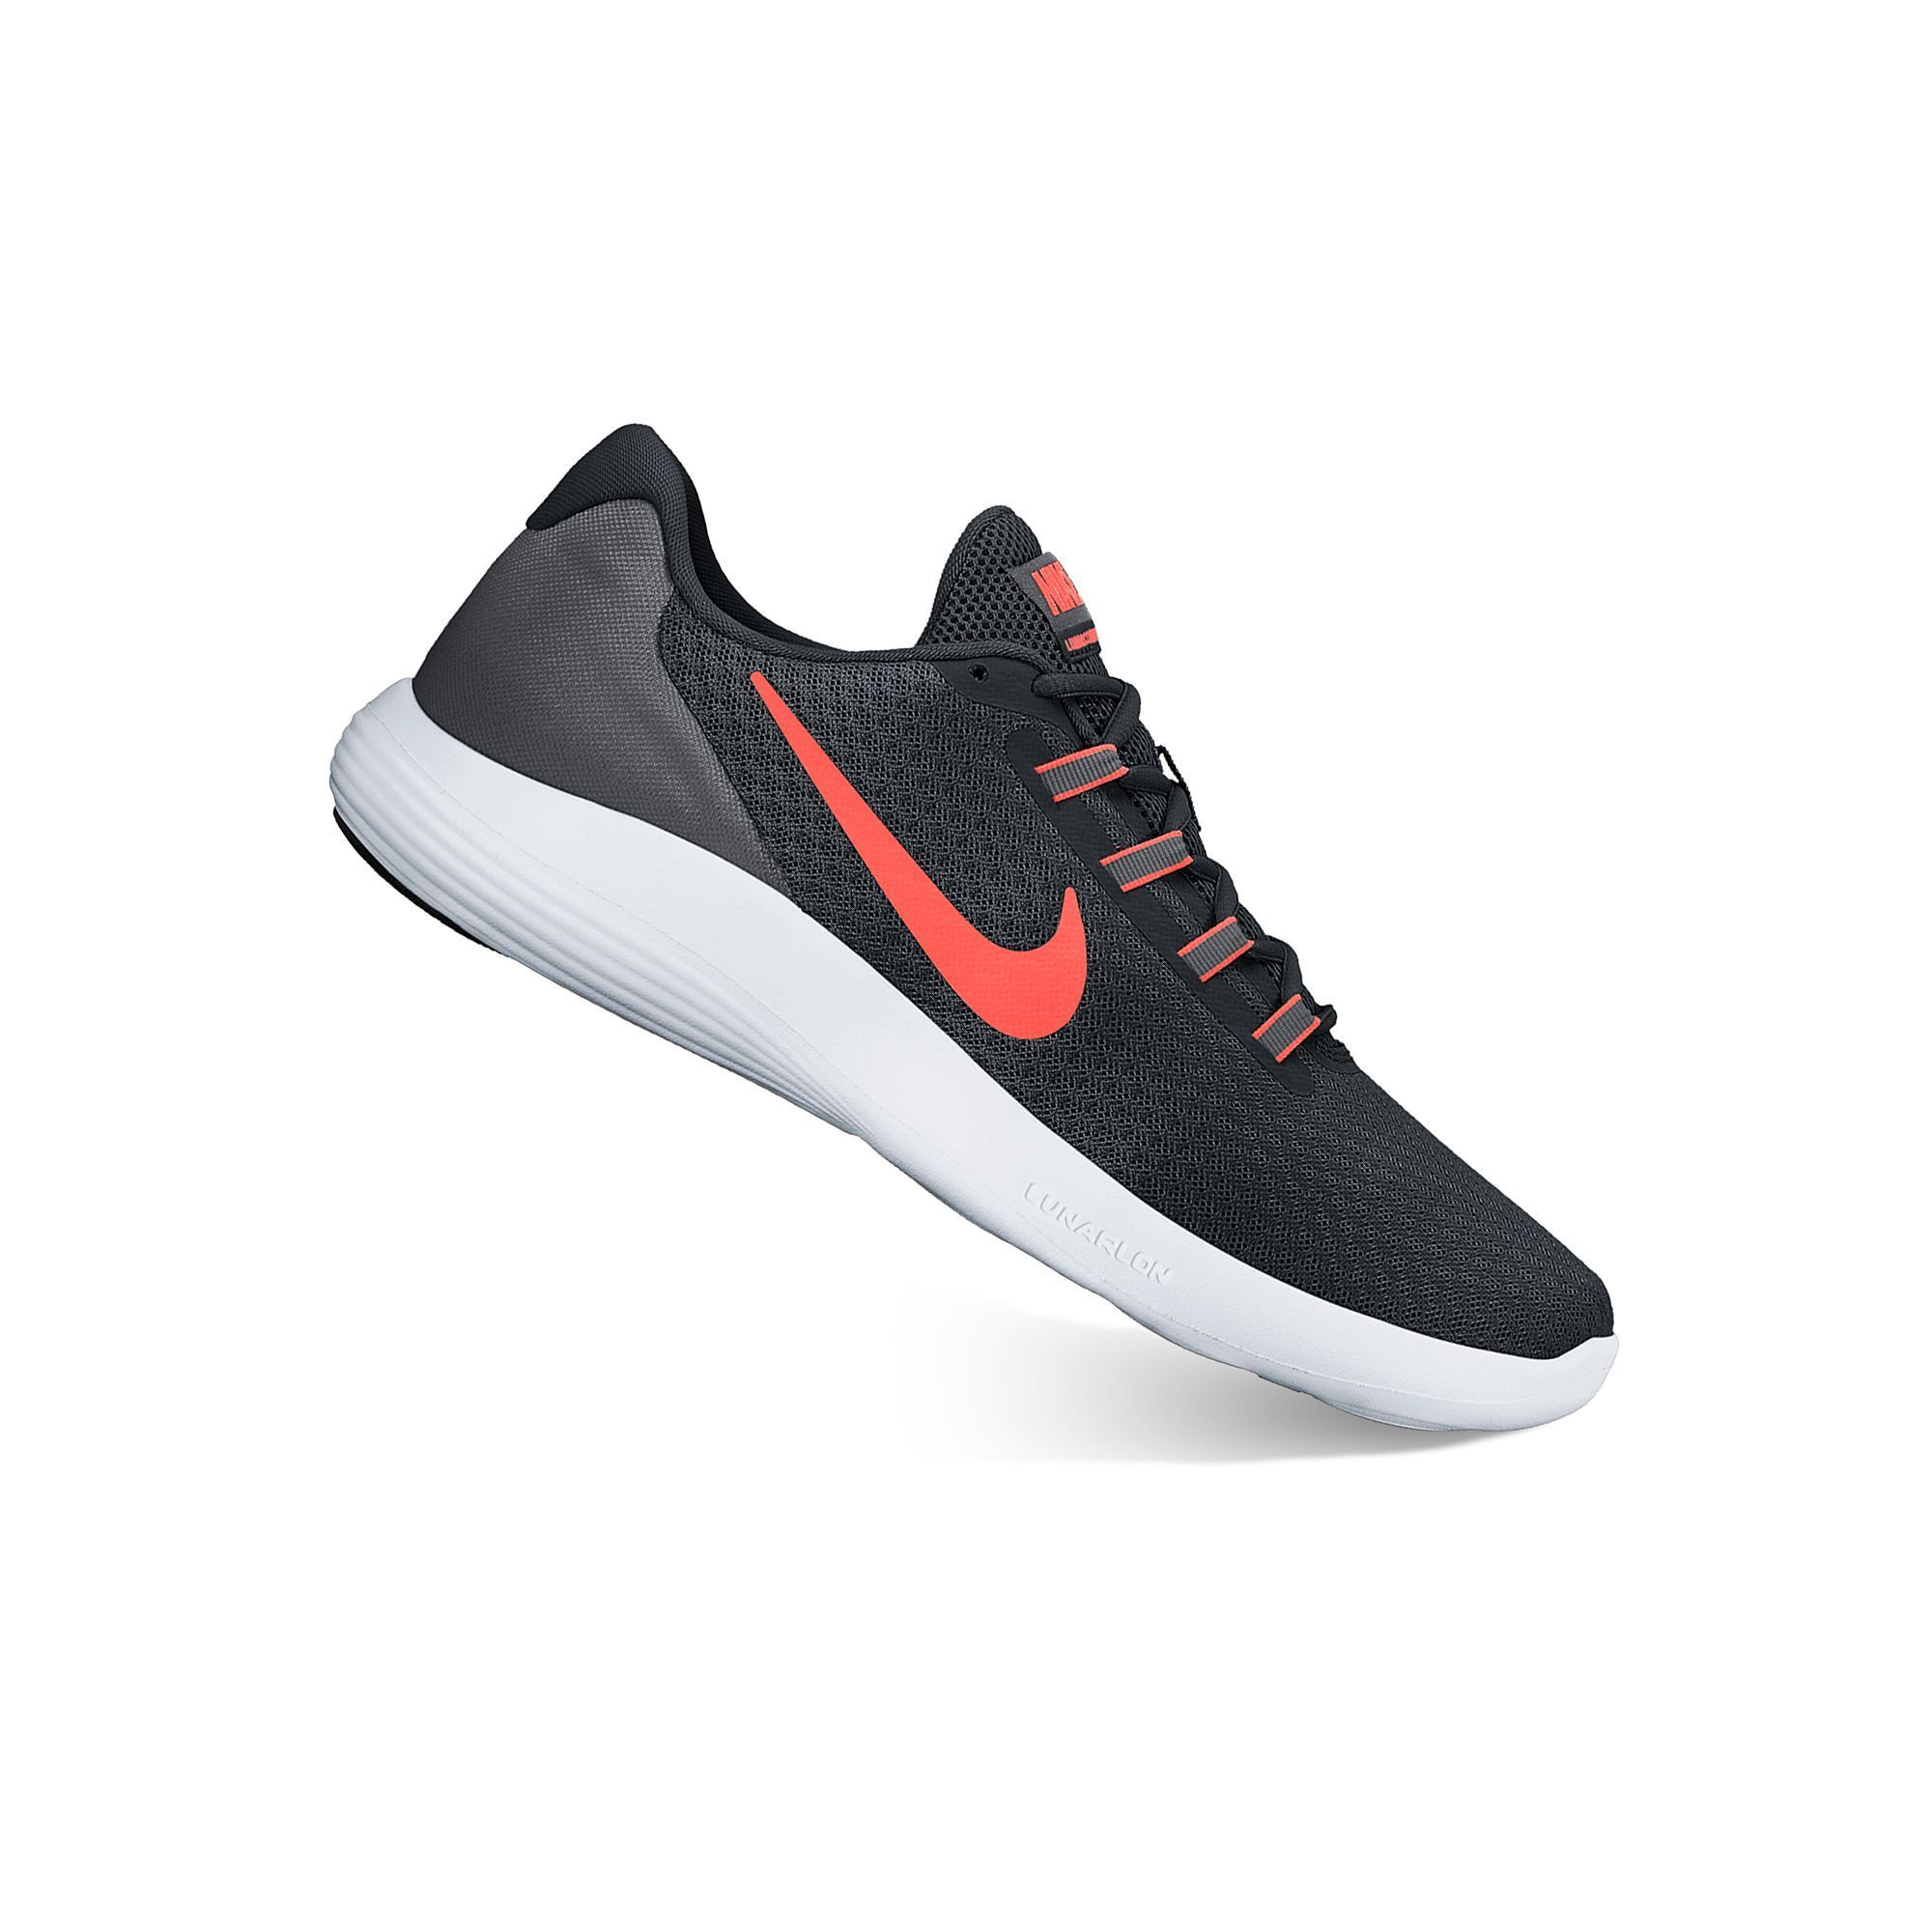 c4ee9835eb52 Nike LunarConverge Men s Running Shoes in 2019